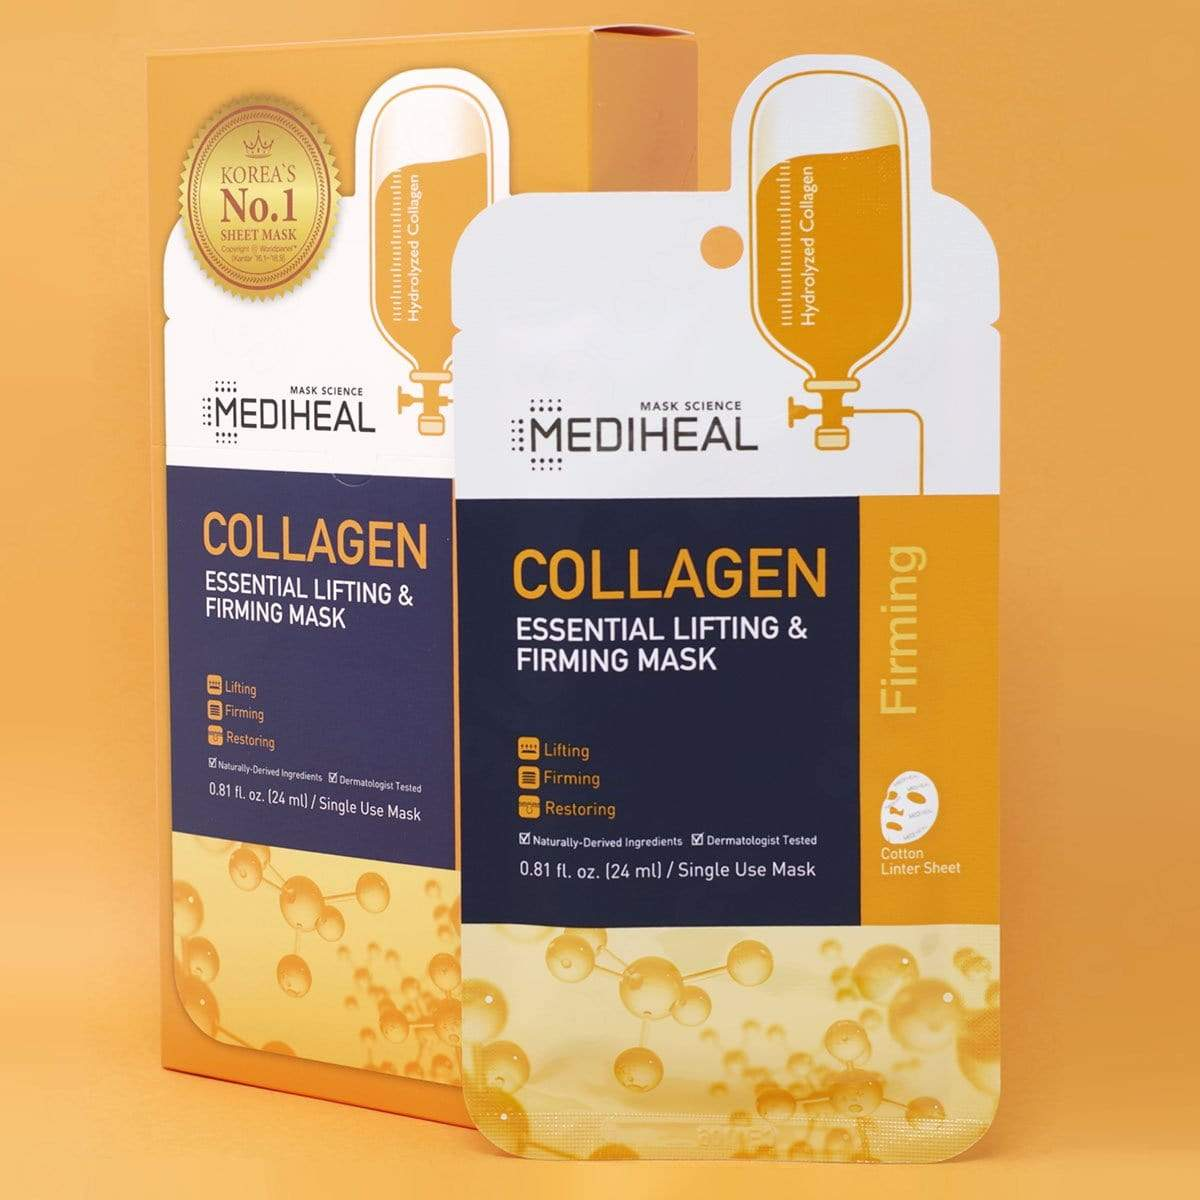 MEDIHEAL Collagen Essential Lifting & Firming Mask